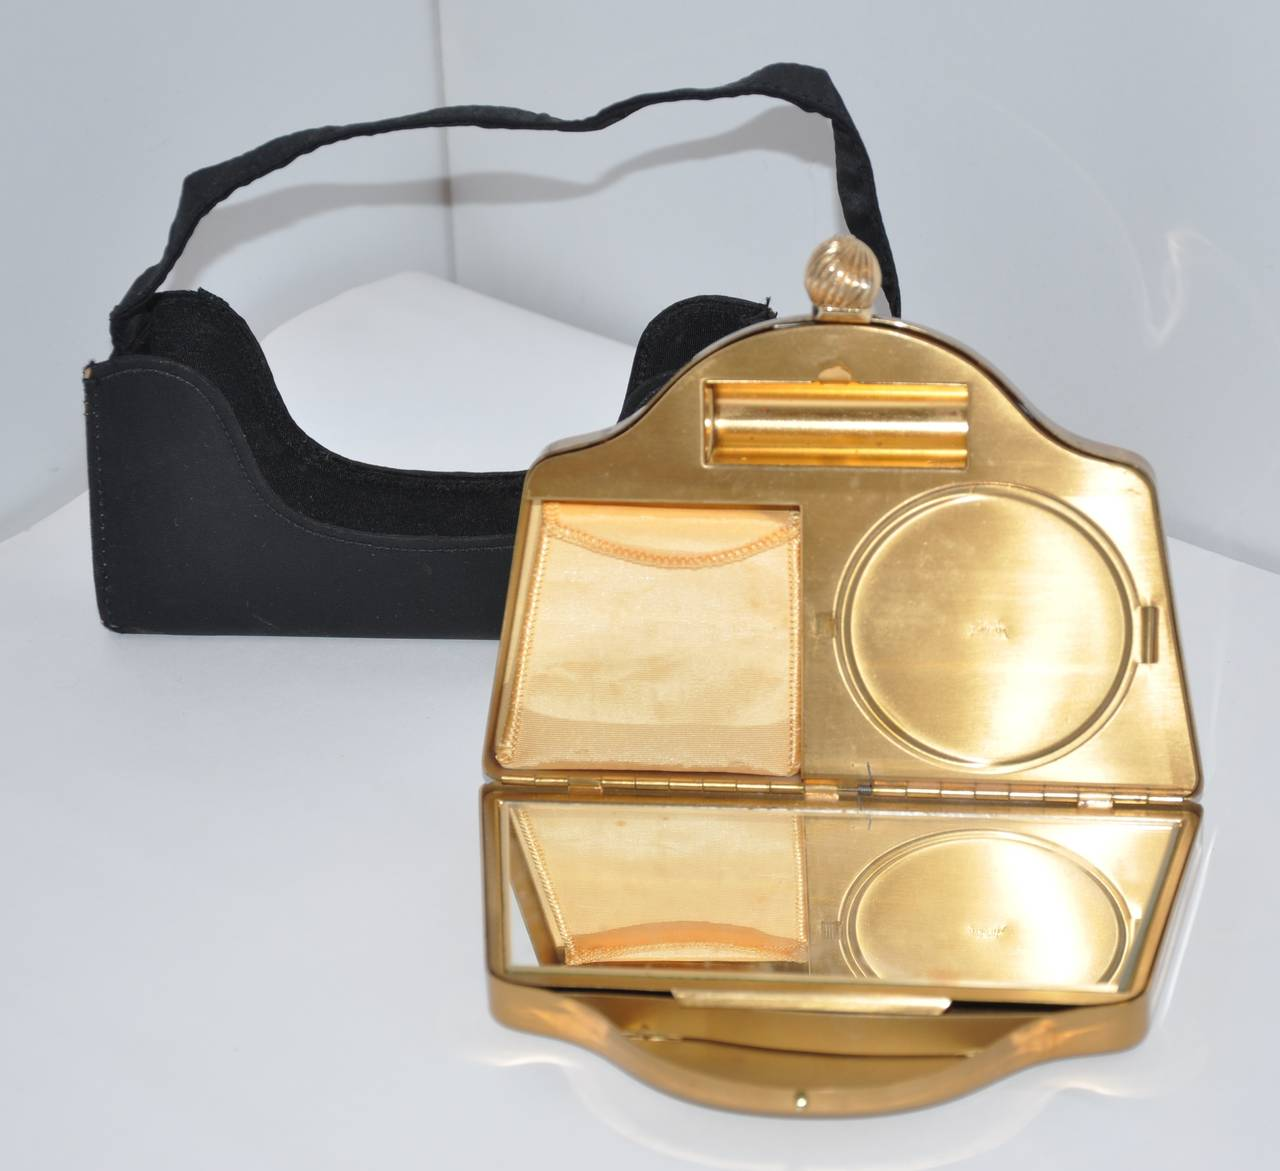 VoLupte Gold Hardware Make-Up Clutch with Cover Black Handbag Cover In Good Condition For Sale In New York, NY